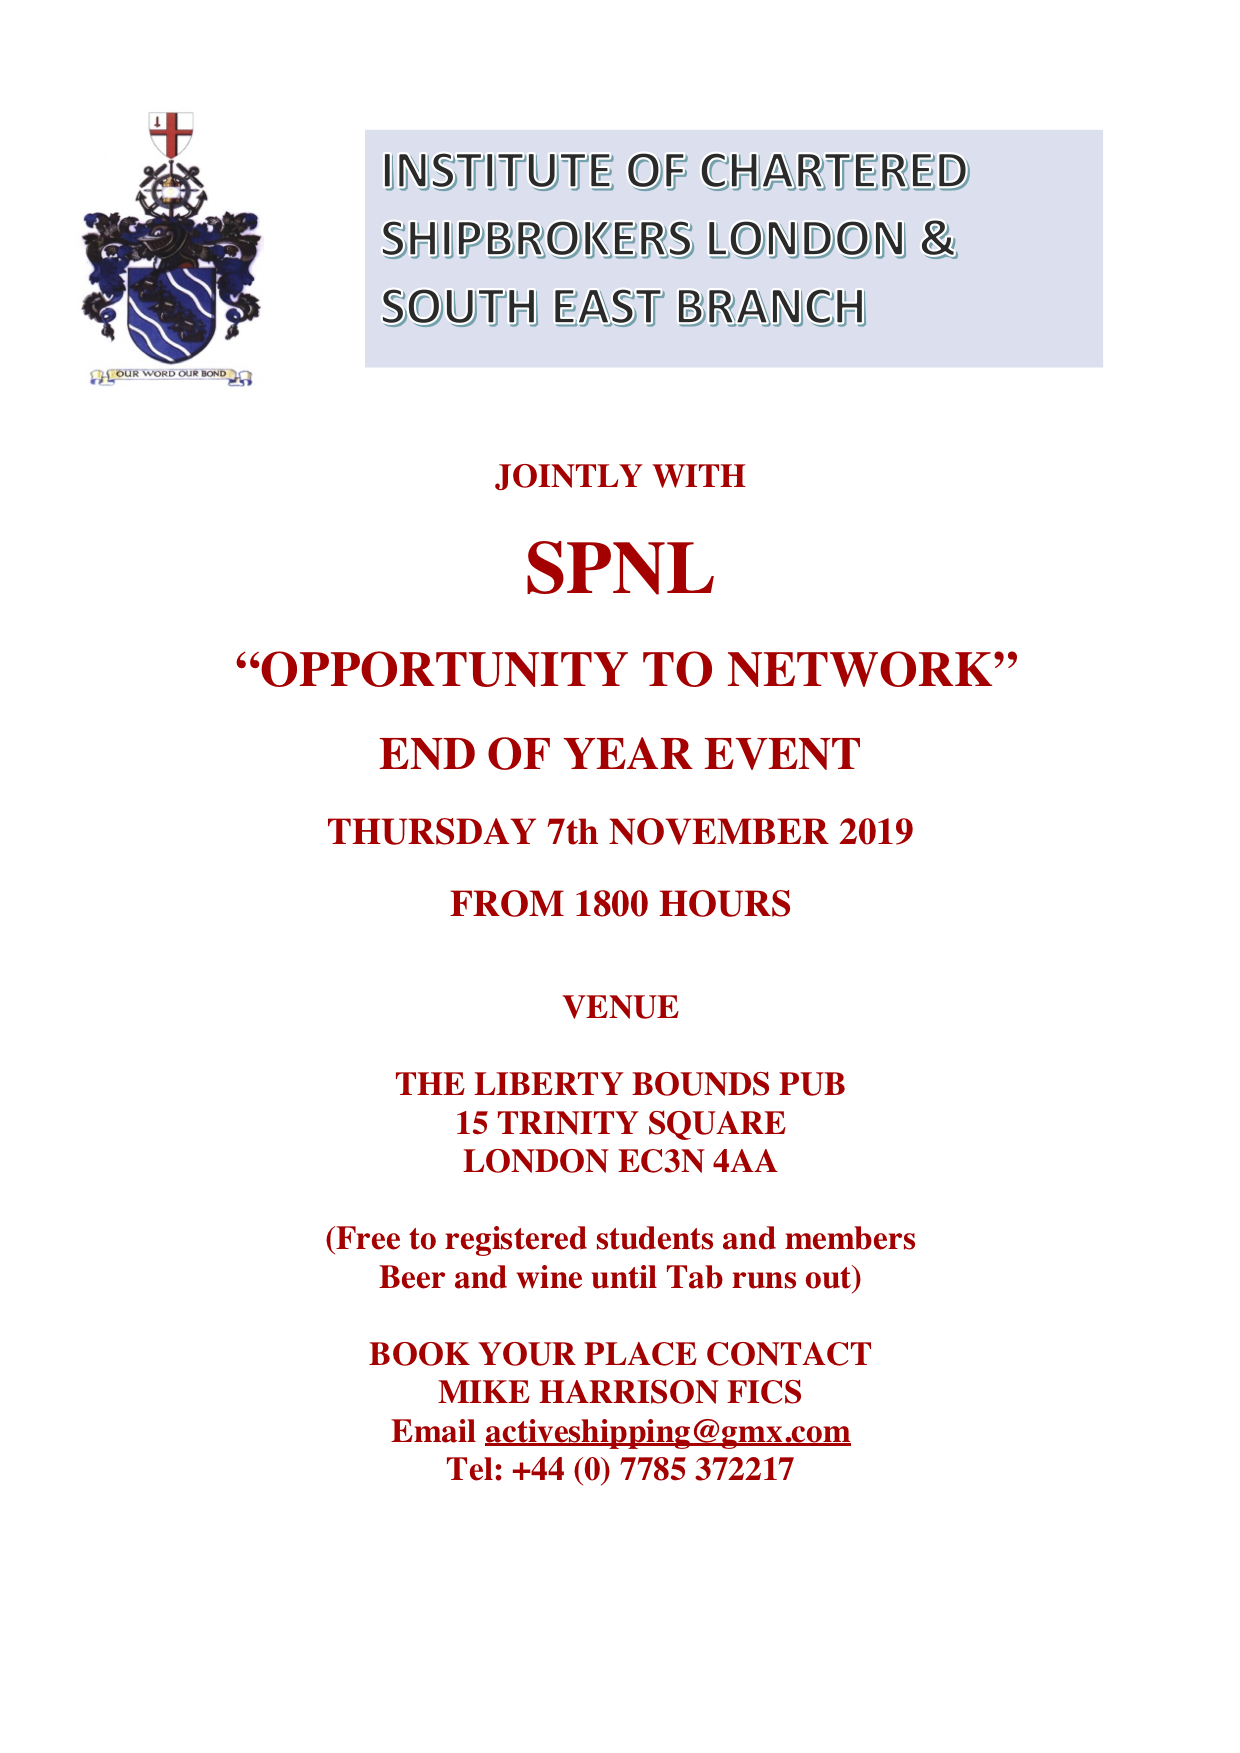 ICS LB SPNL NETWORKING 07.11.2019